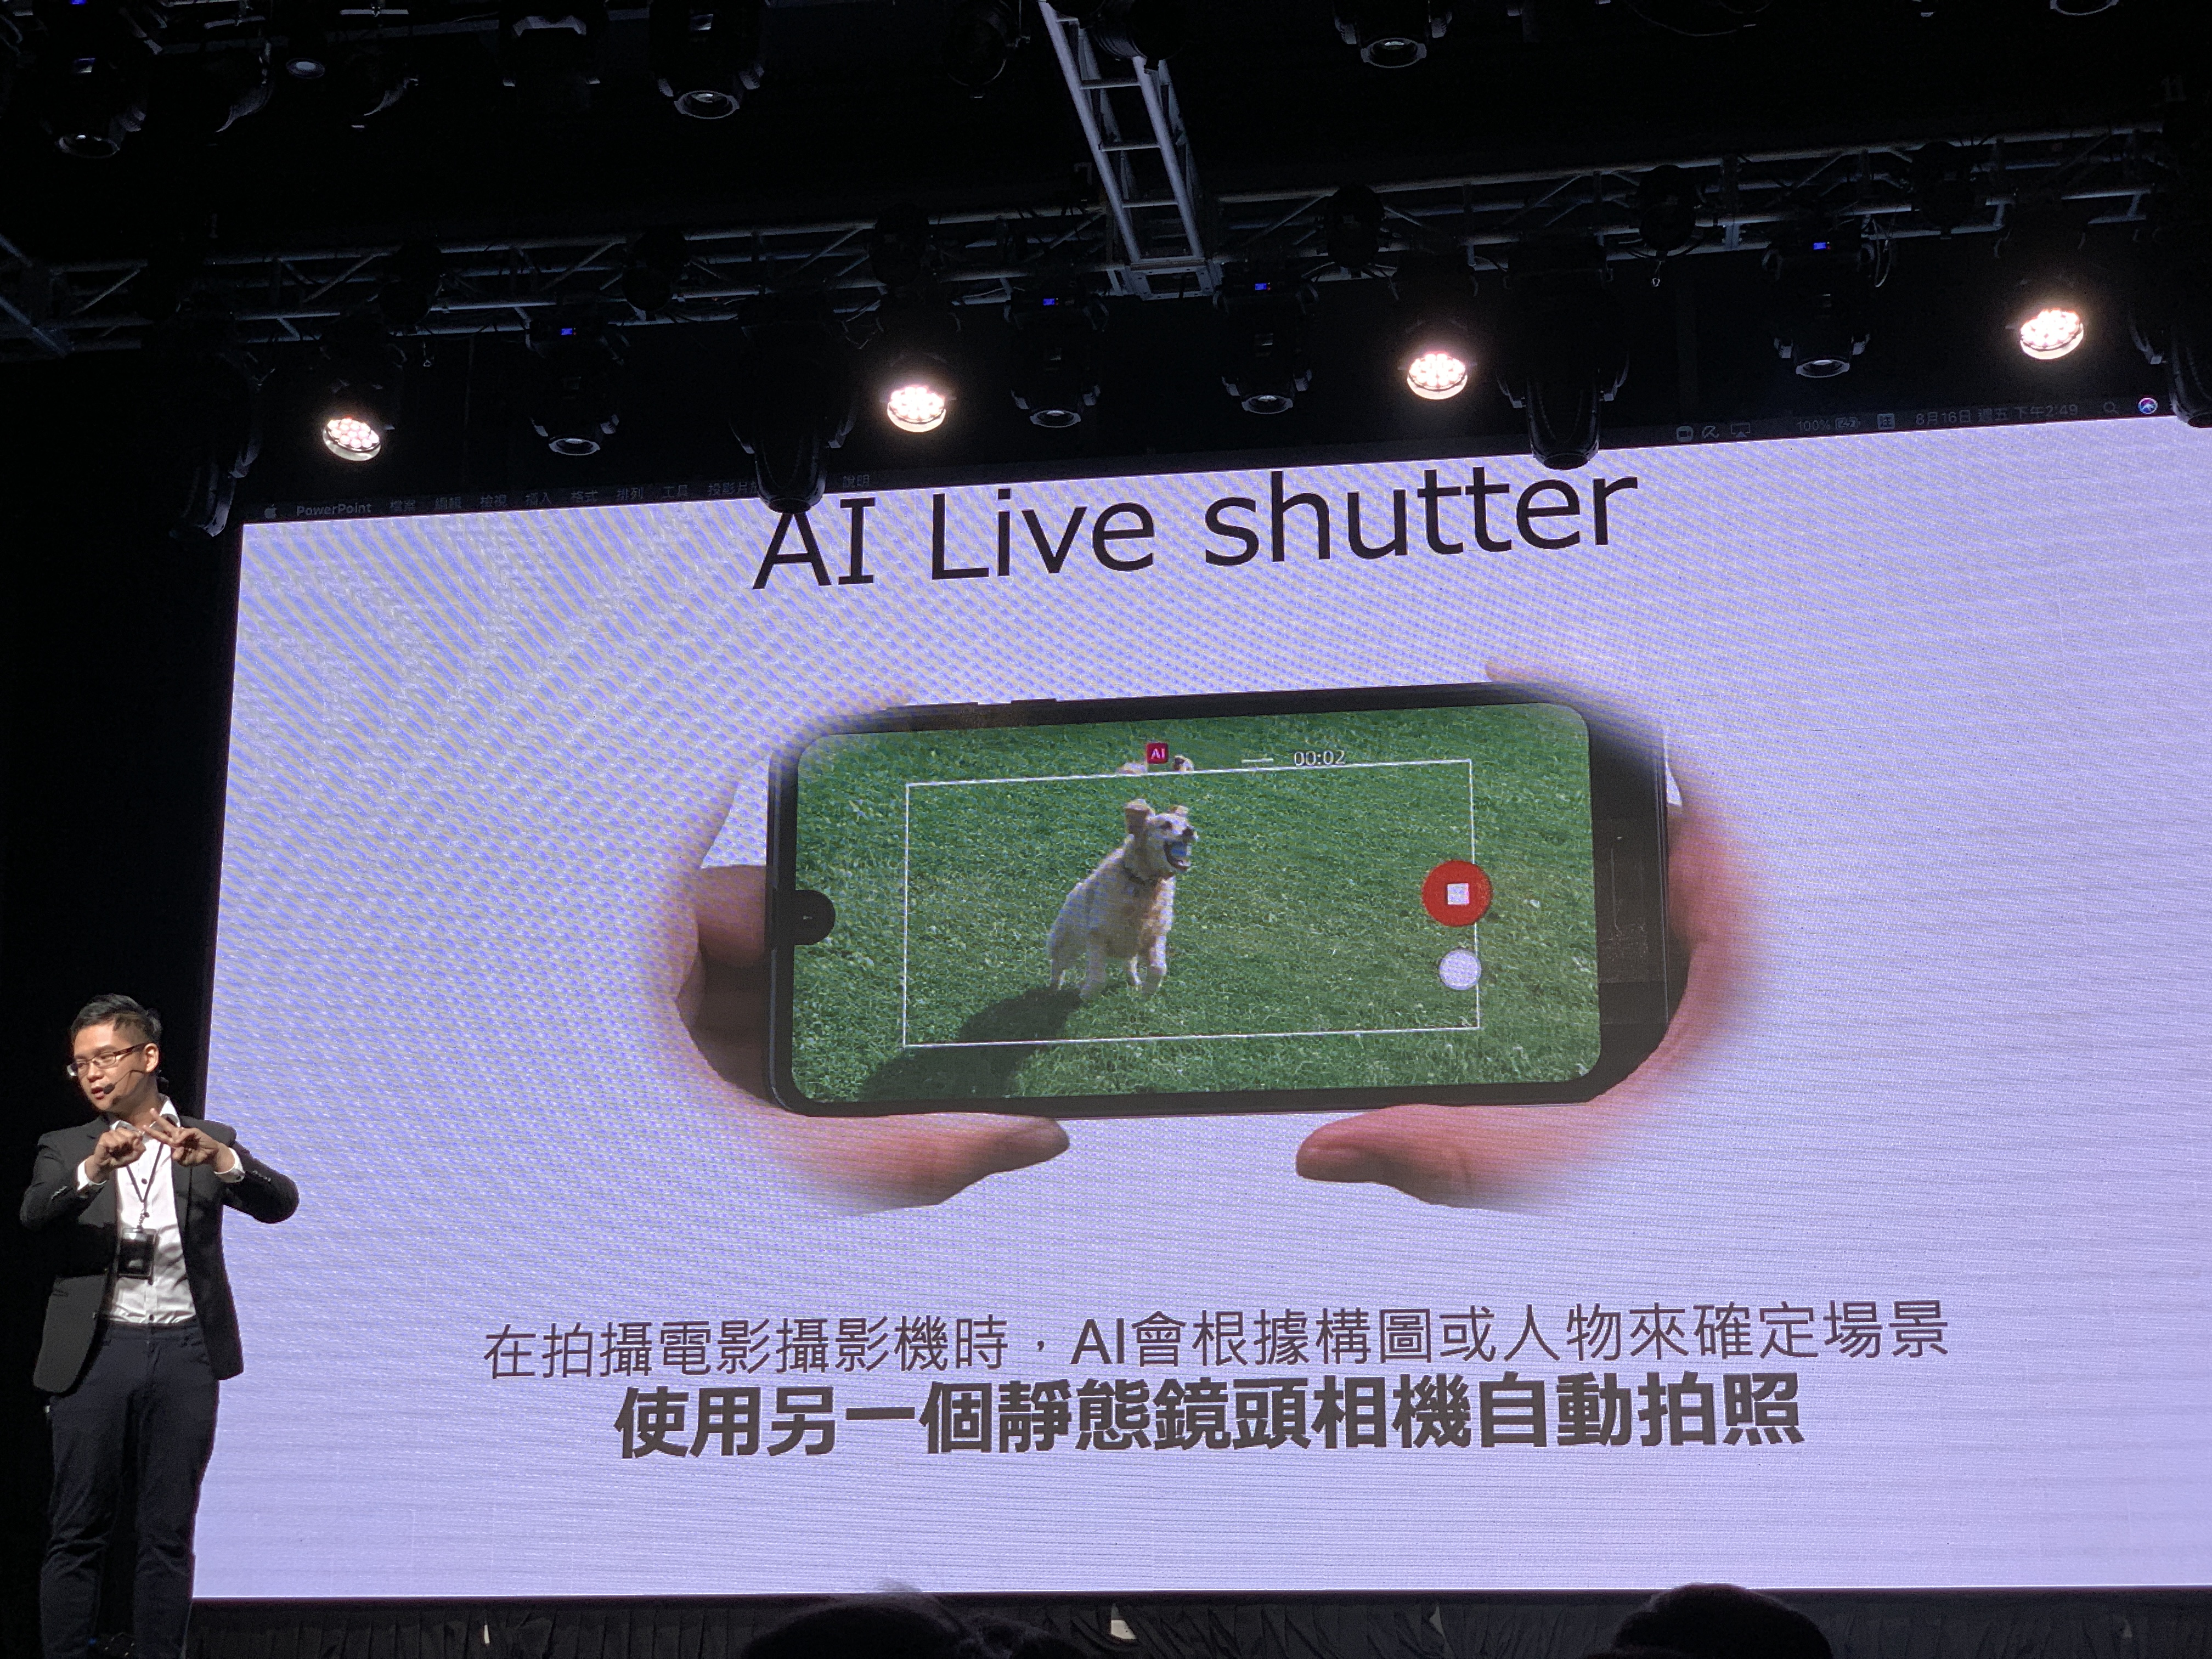 SHARP AQUOS R3 獨家AI Live Story技術SHARP AQUOS R3 獨家AI Live Story技術